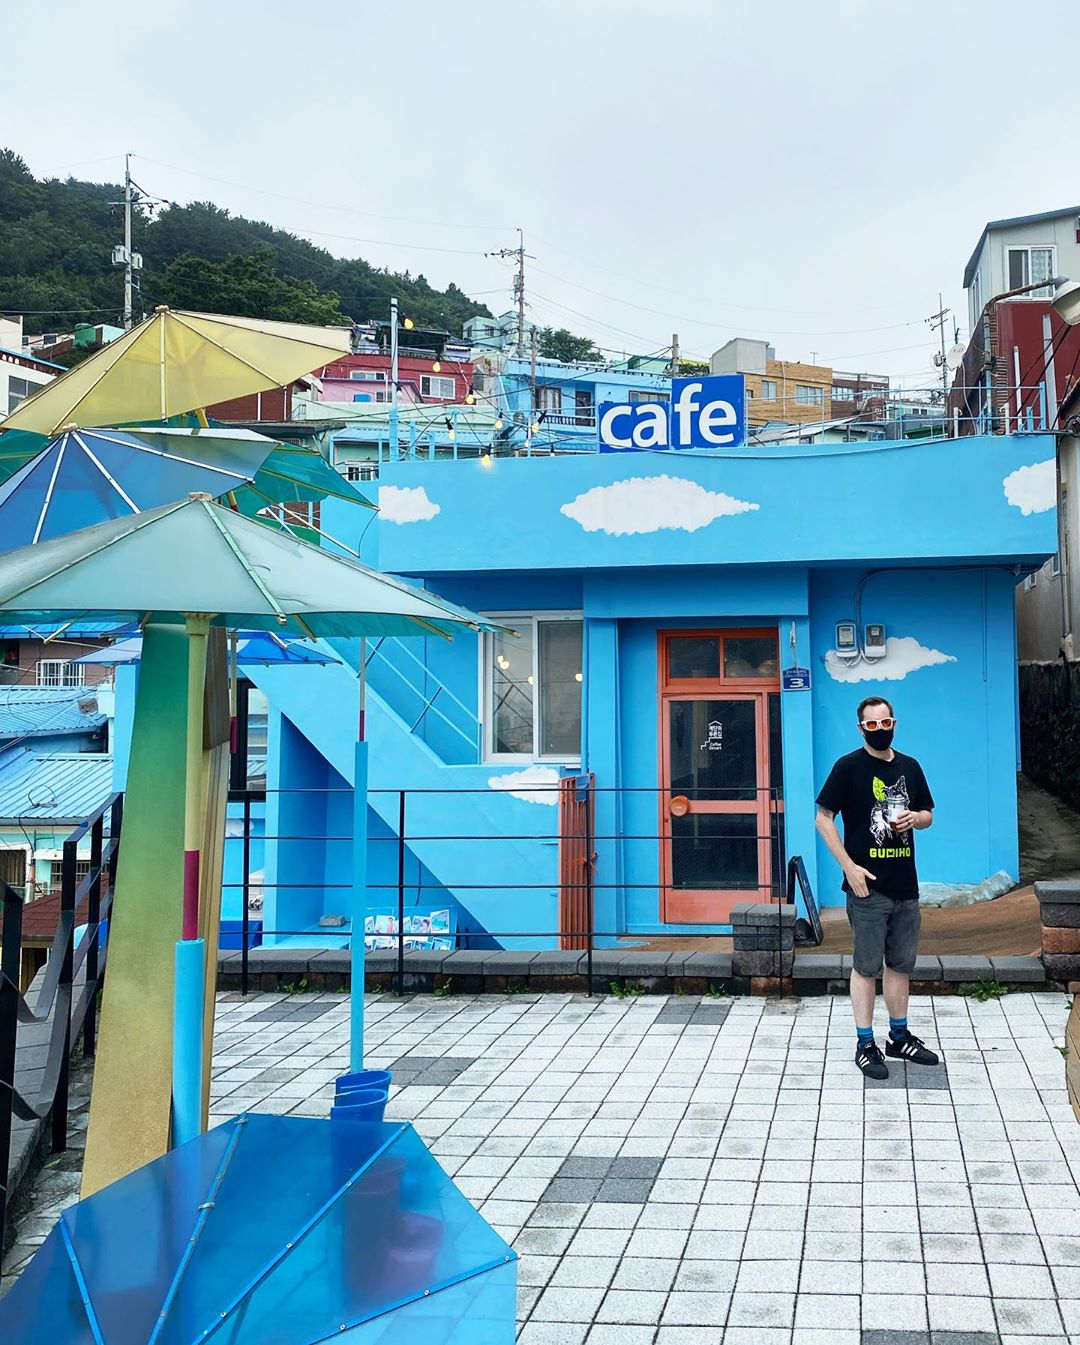 Gamcheon Culture Village - Blue House on the Stairs 계단위 푸른집